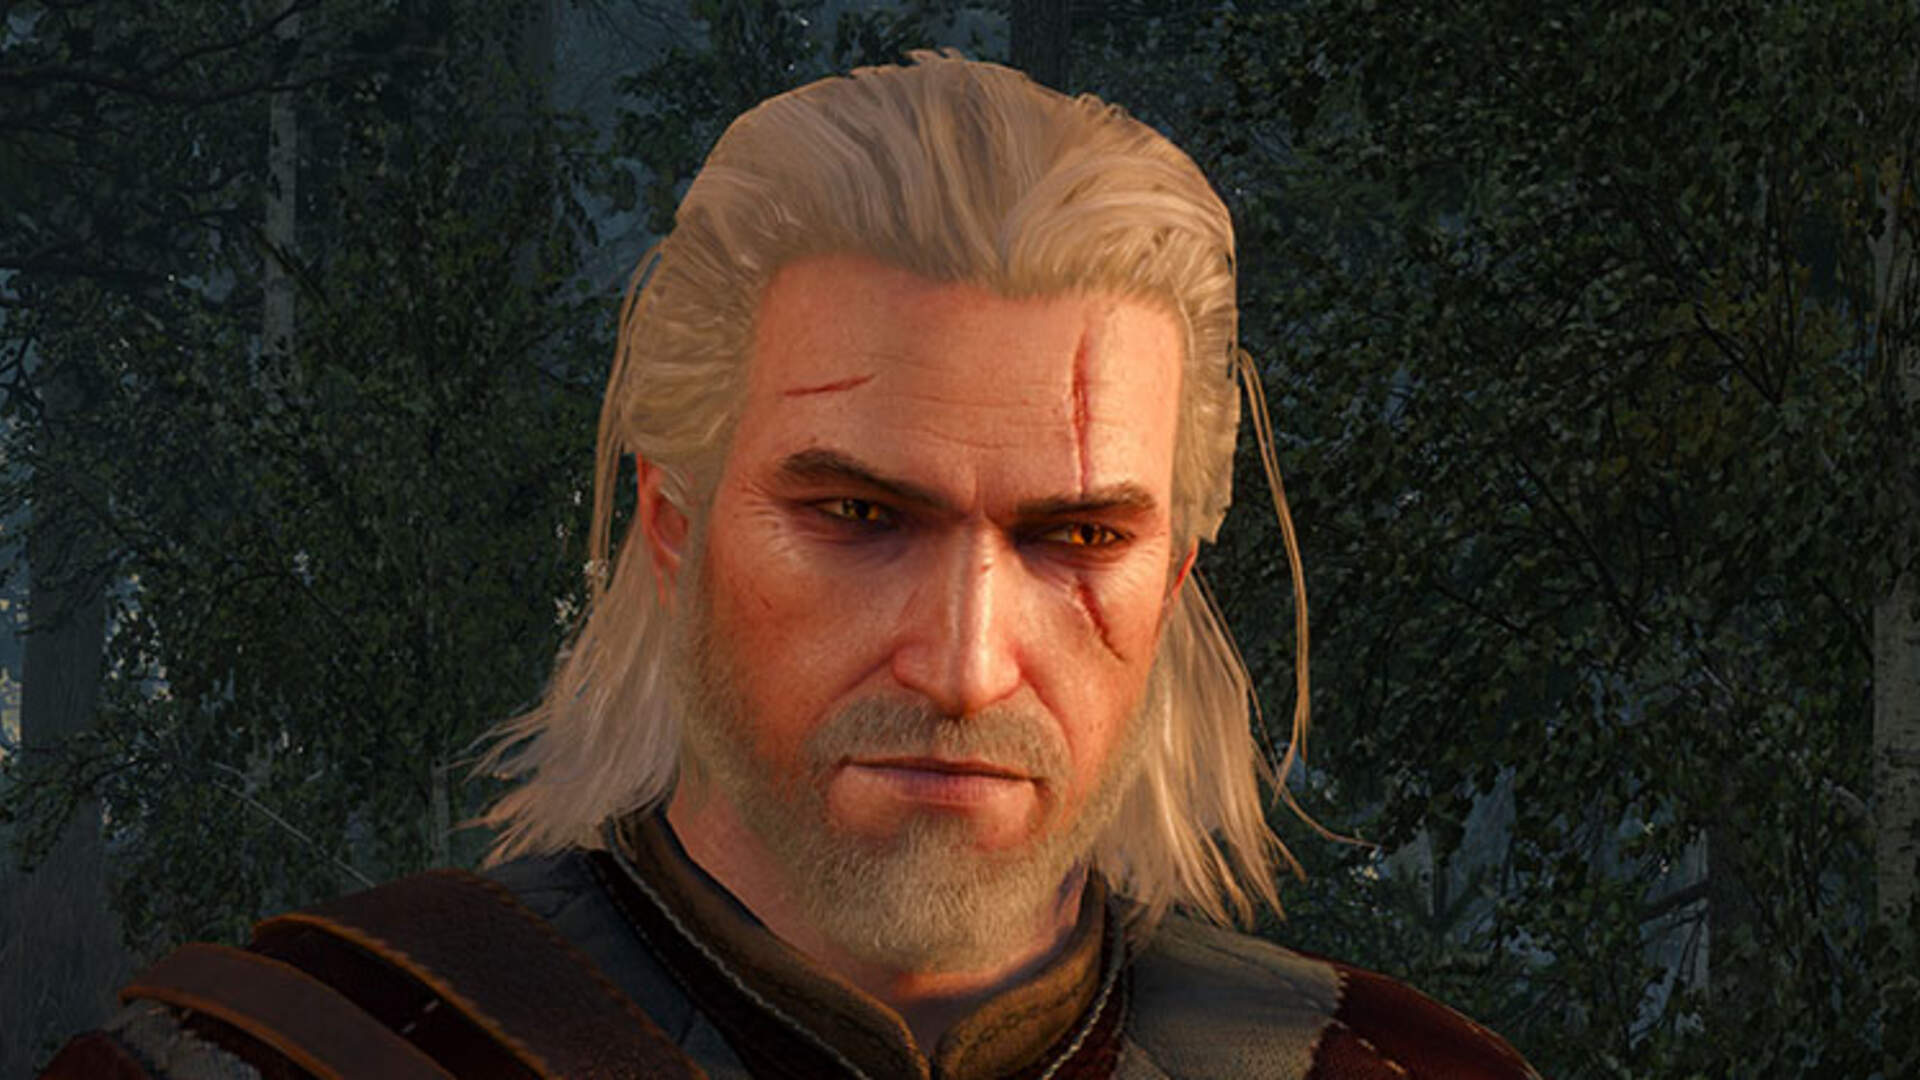 The Witcher 3 Endings - How to get Every Good and Bad Ending, All Endings Explained